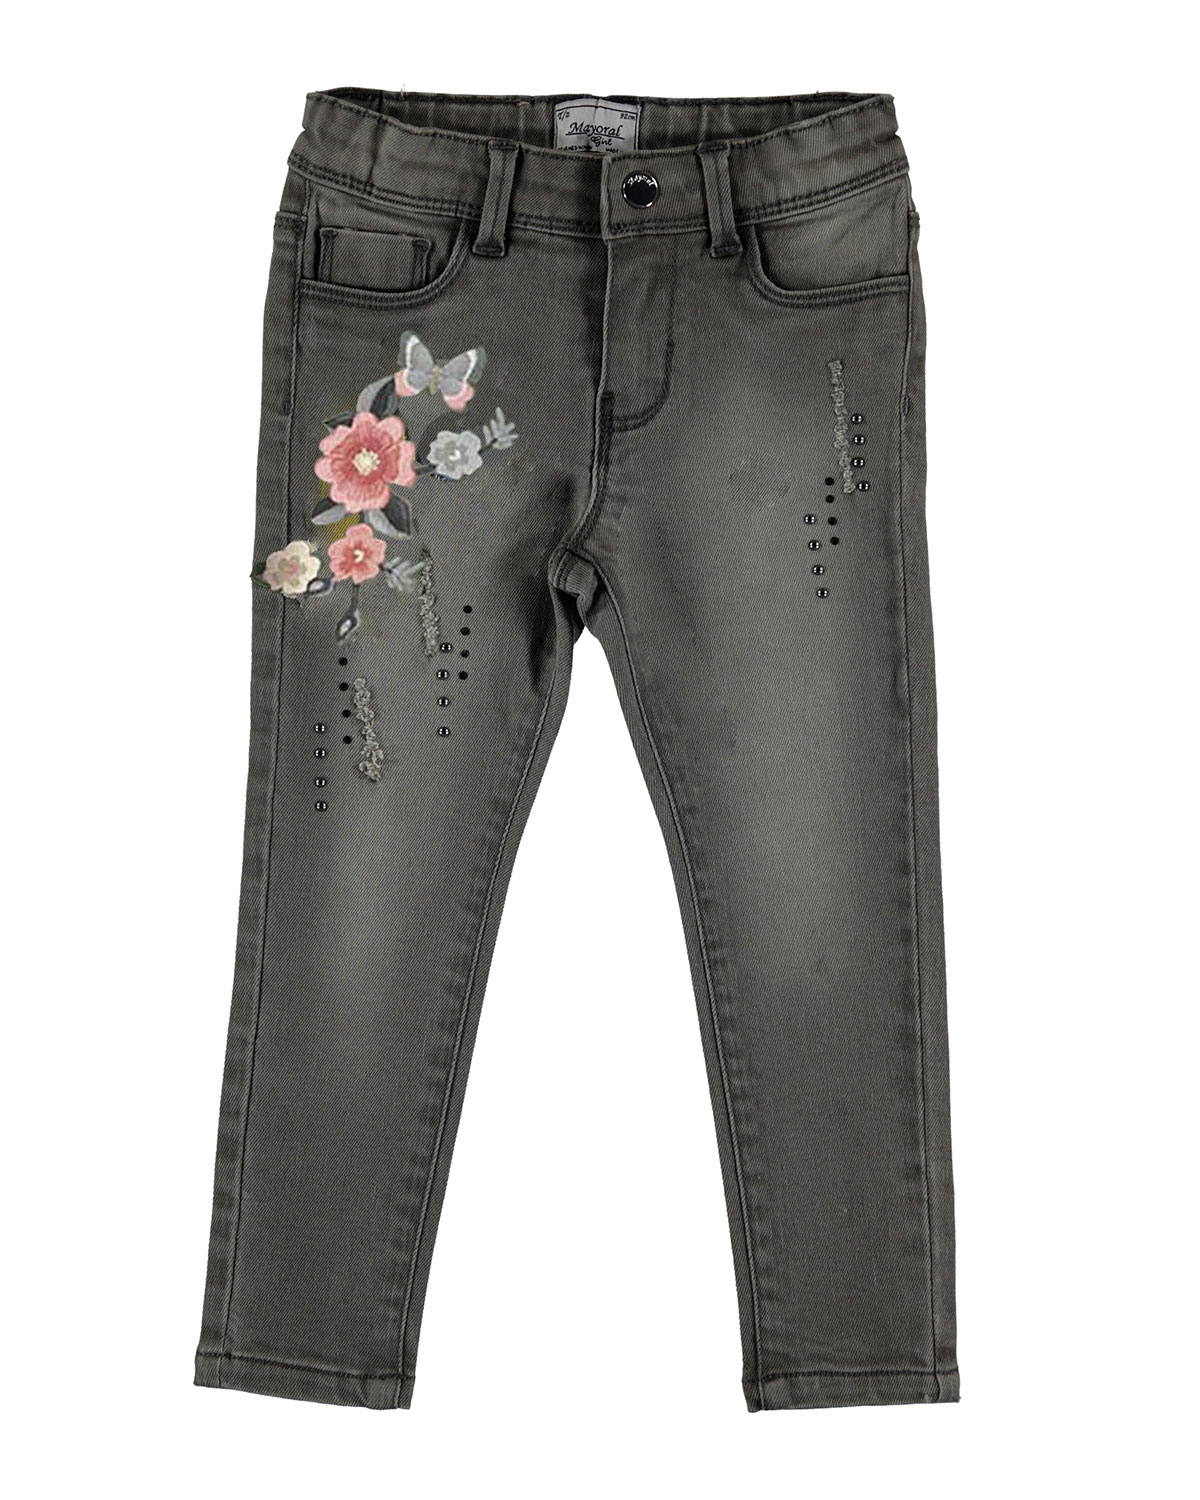 Floral Embroidered Jeans, Size 3-7